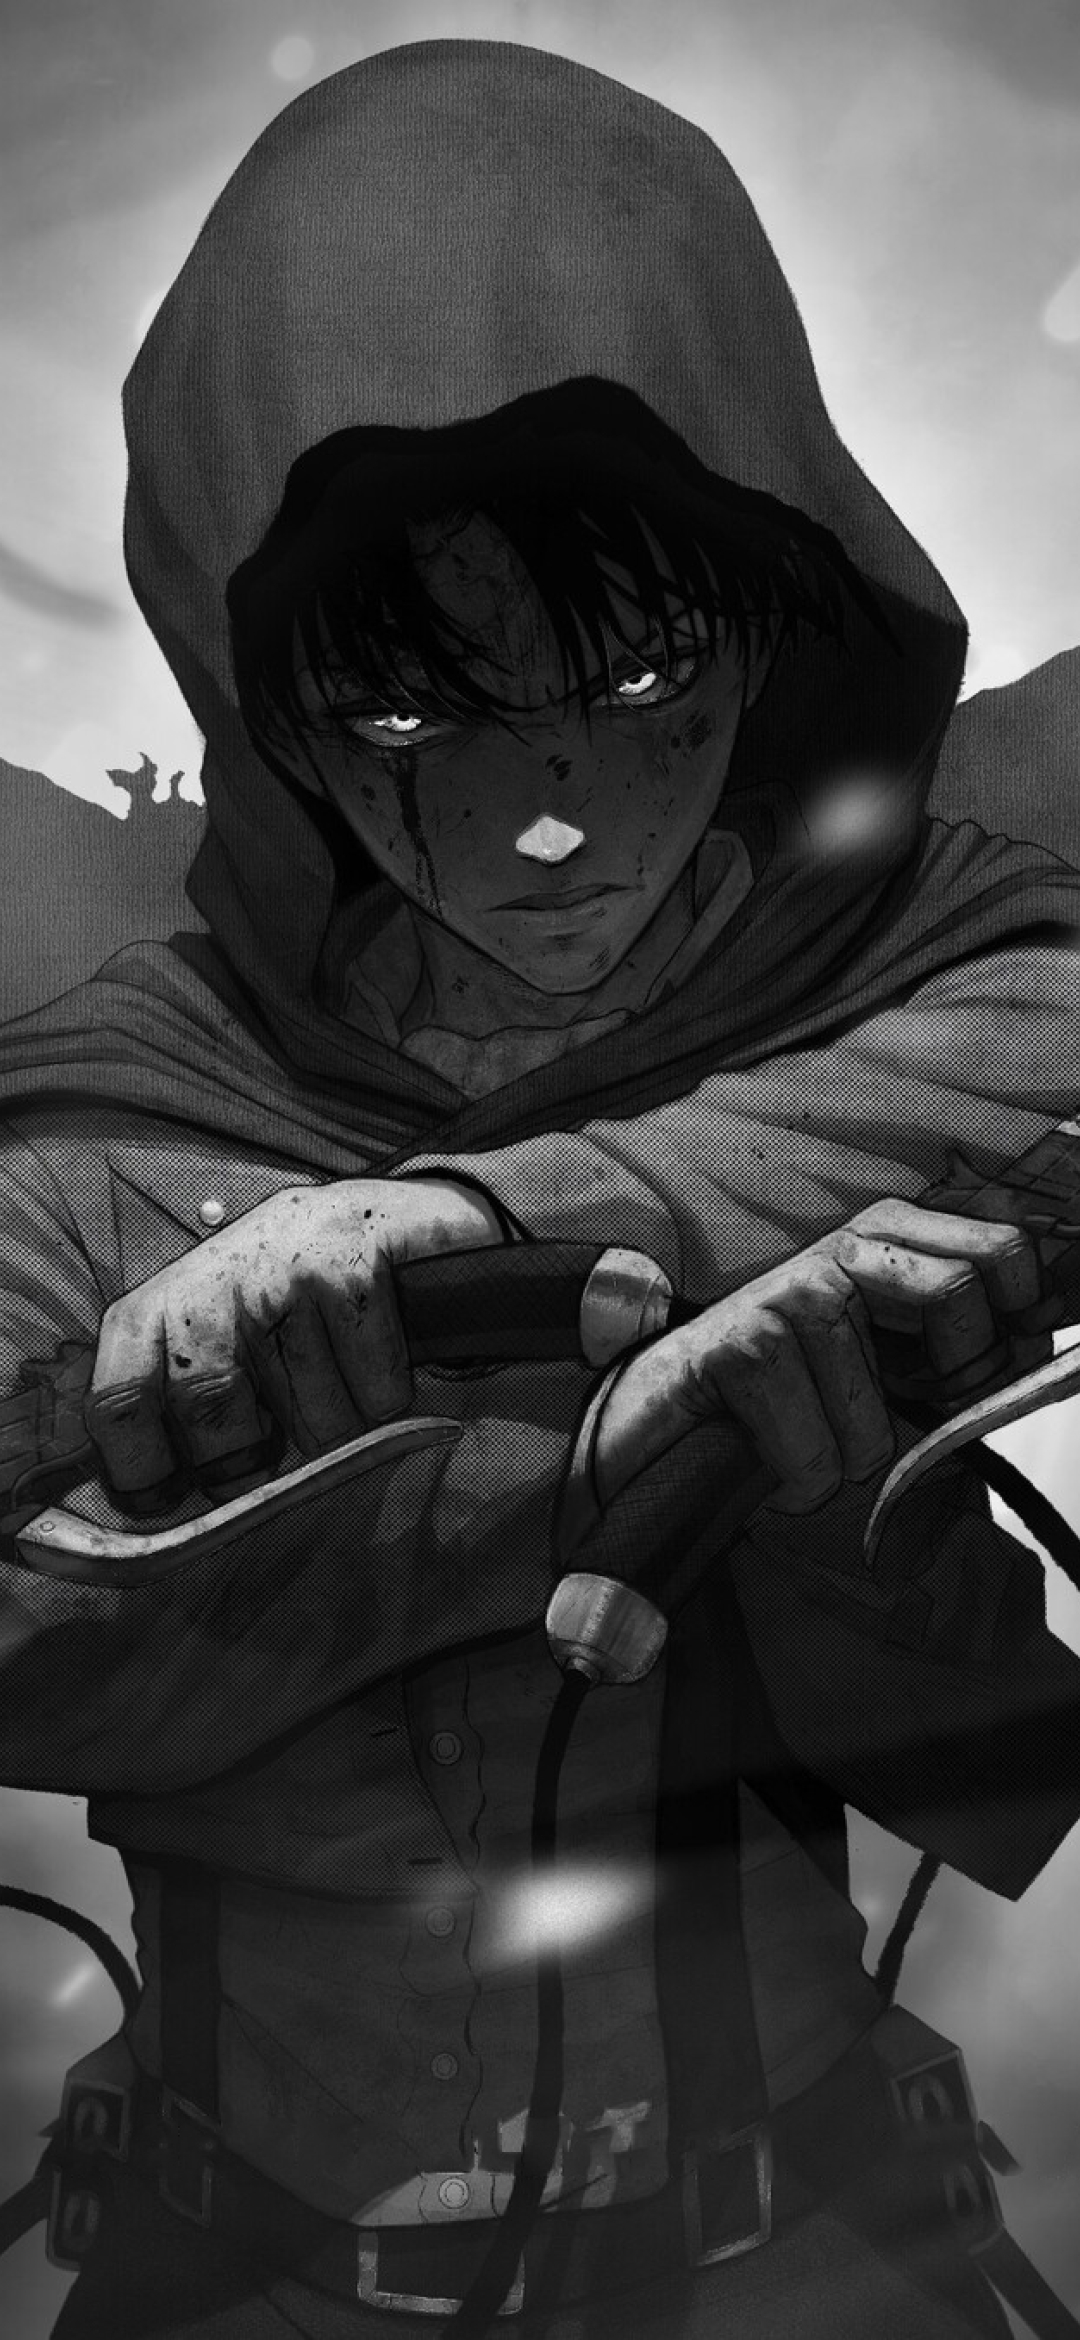 1080x2340 Levi Ackerman Monochrome 1080x2340 Resolution Wallpaper Hd Anime 4k Wallpapers Images Photos And Background